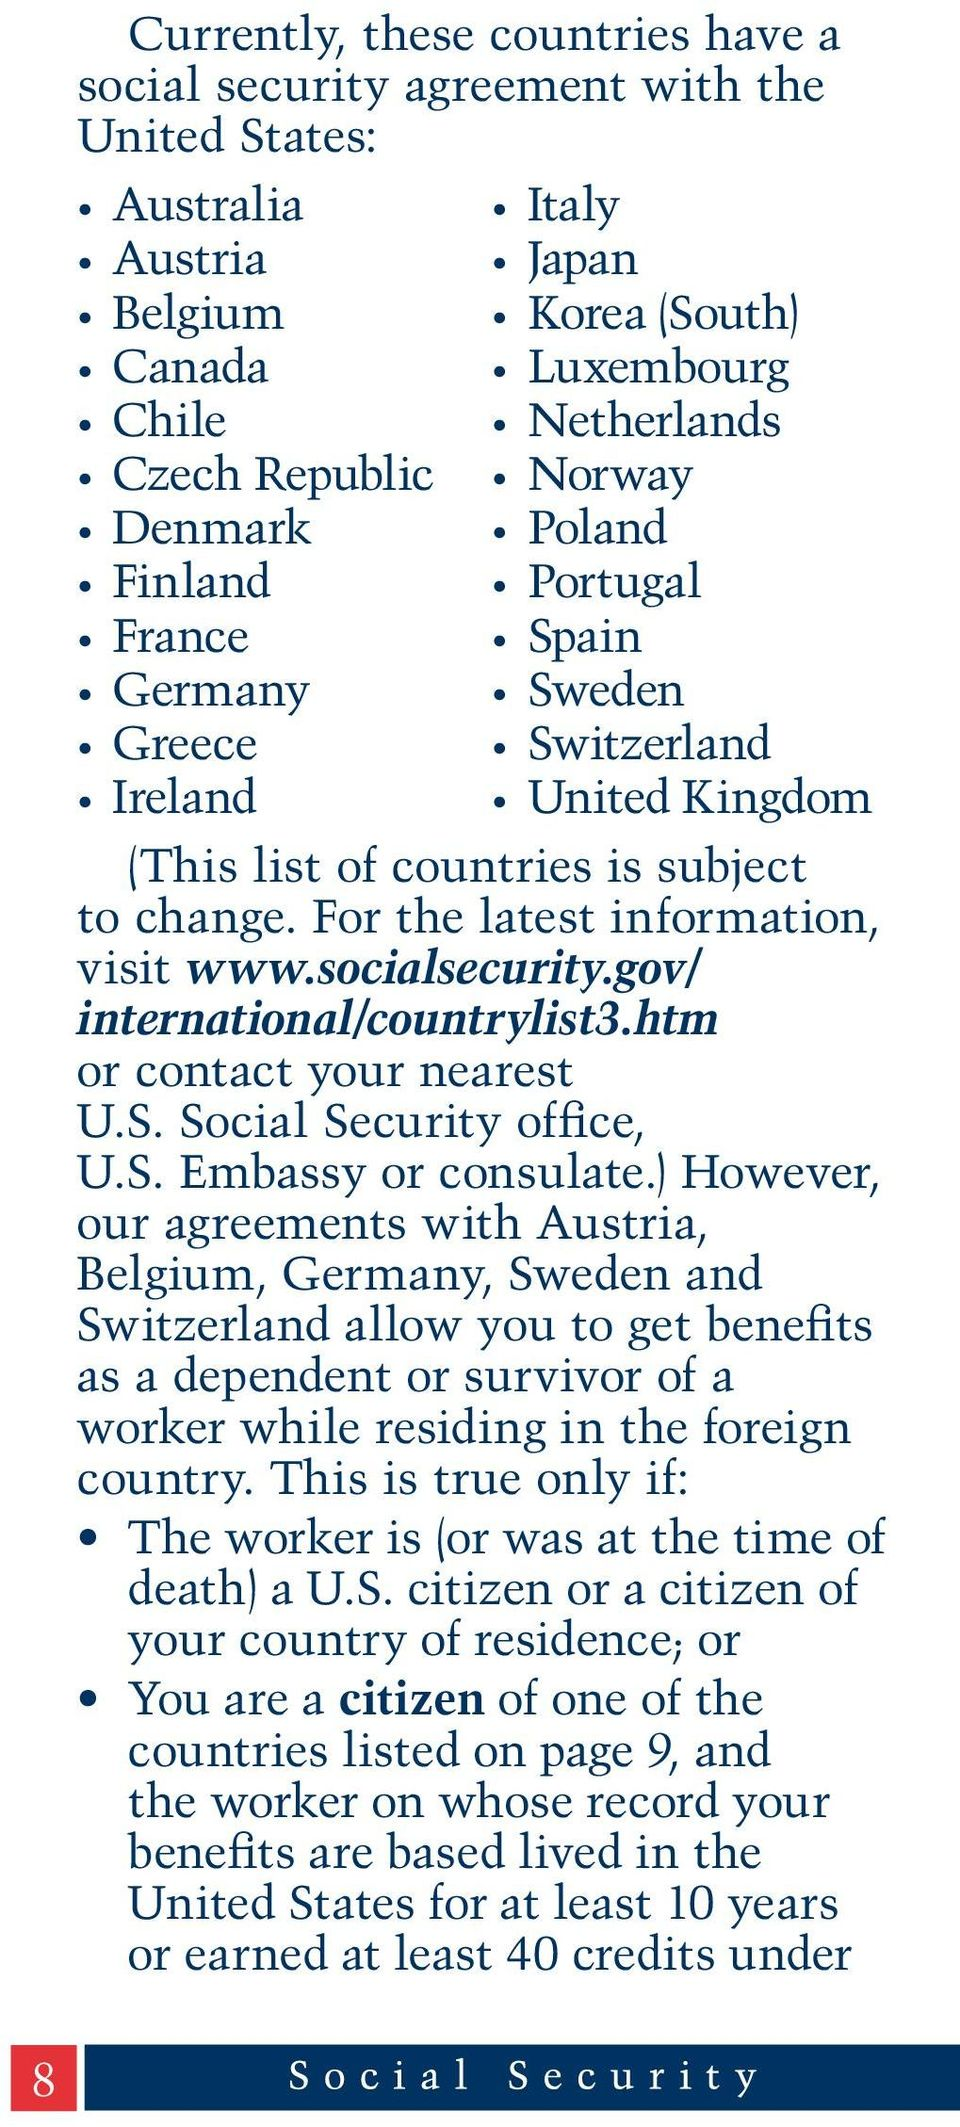 gov/ international/countrylist3.htm or contact your nearest U.S. Social Security office, U.S. Embassy or consulate.